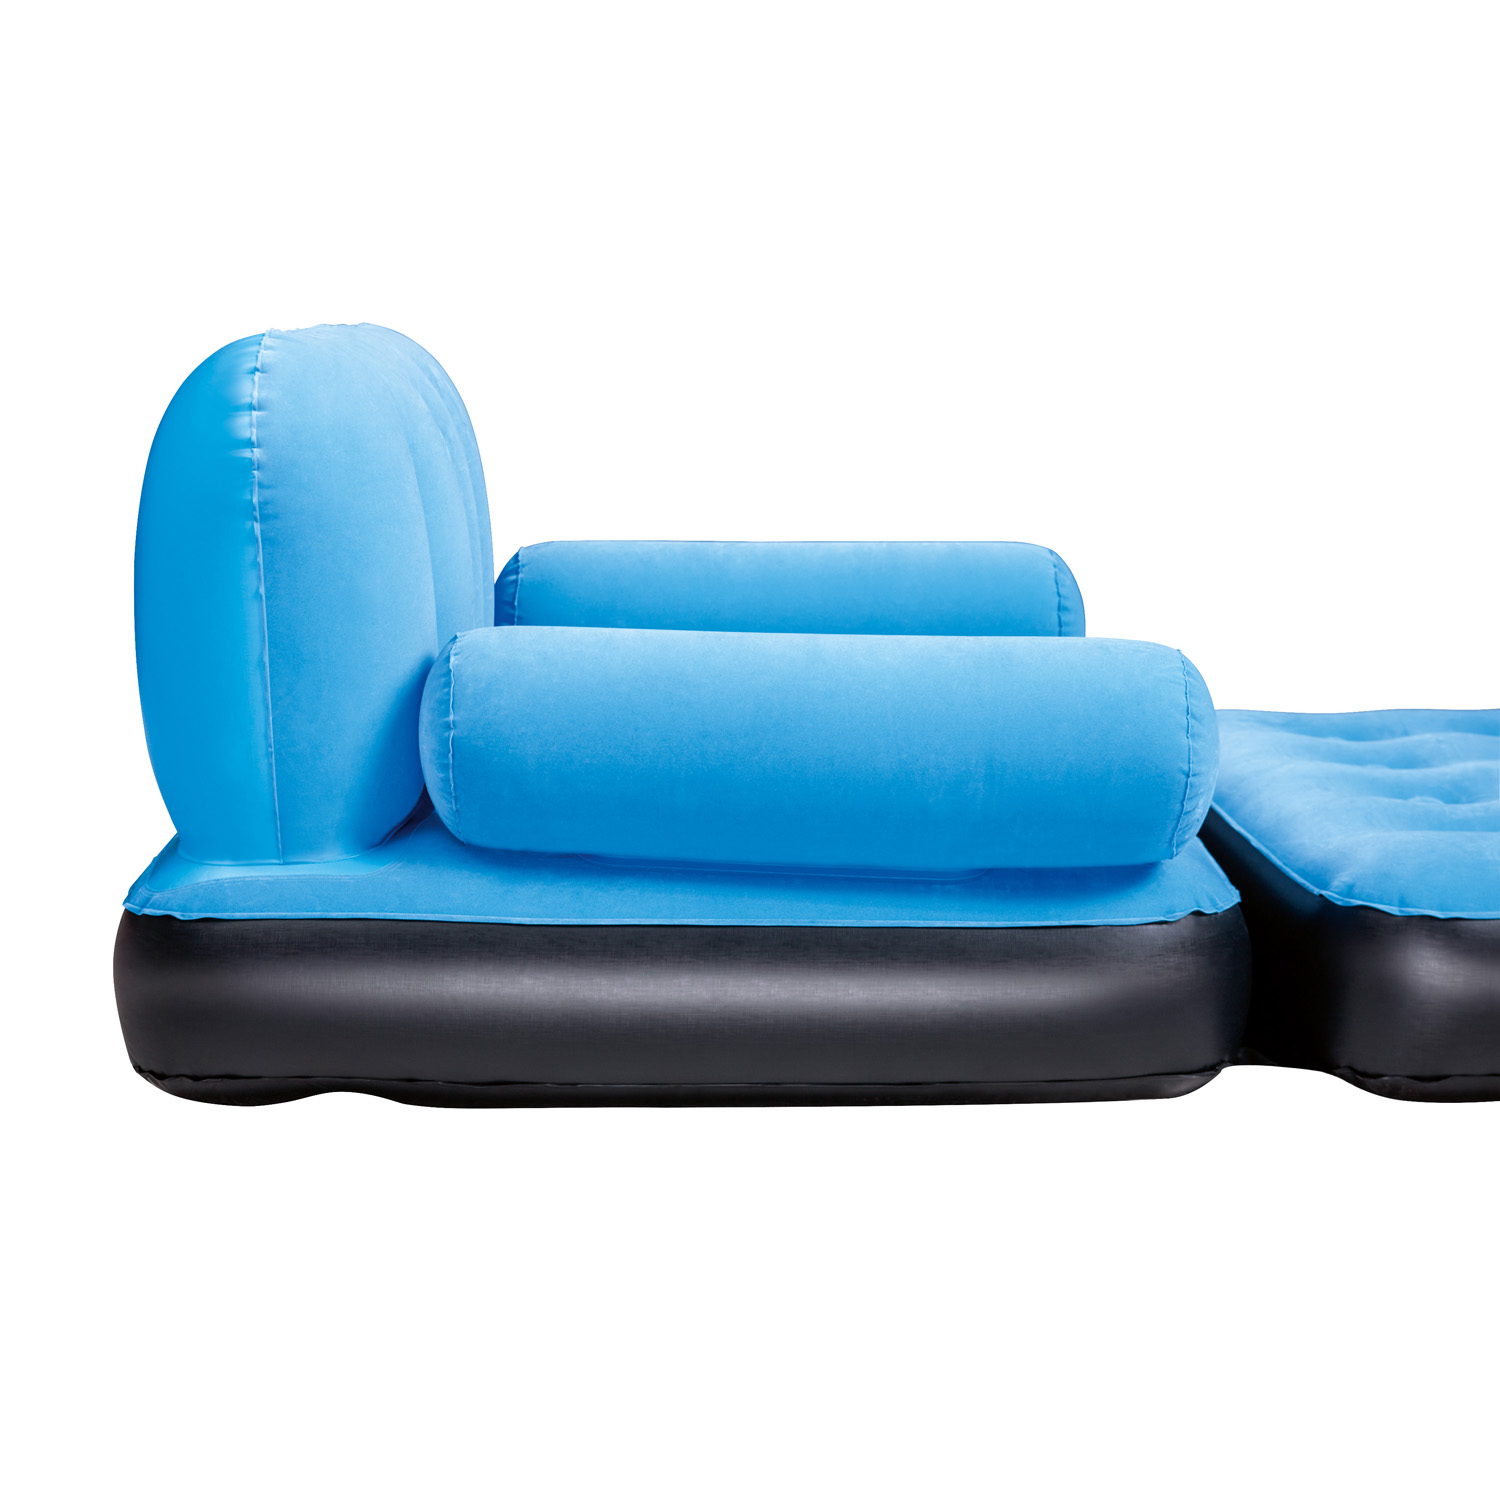 Inflatable Sofa Bed Double Airbed Couch Blow Up Lounger